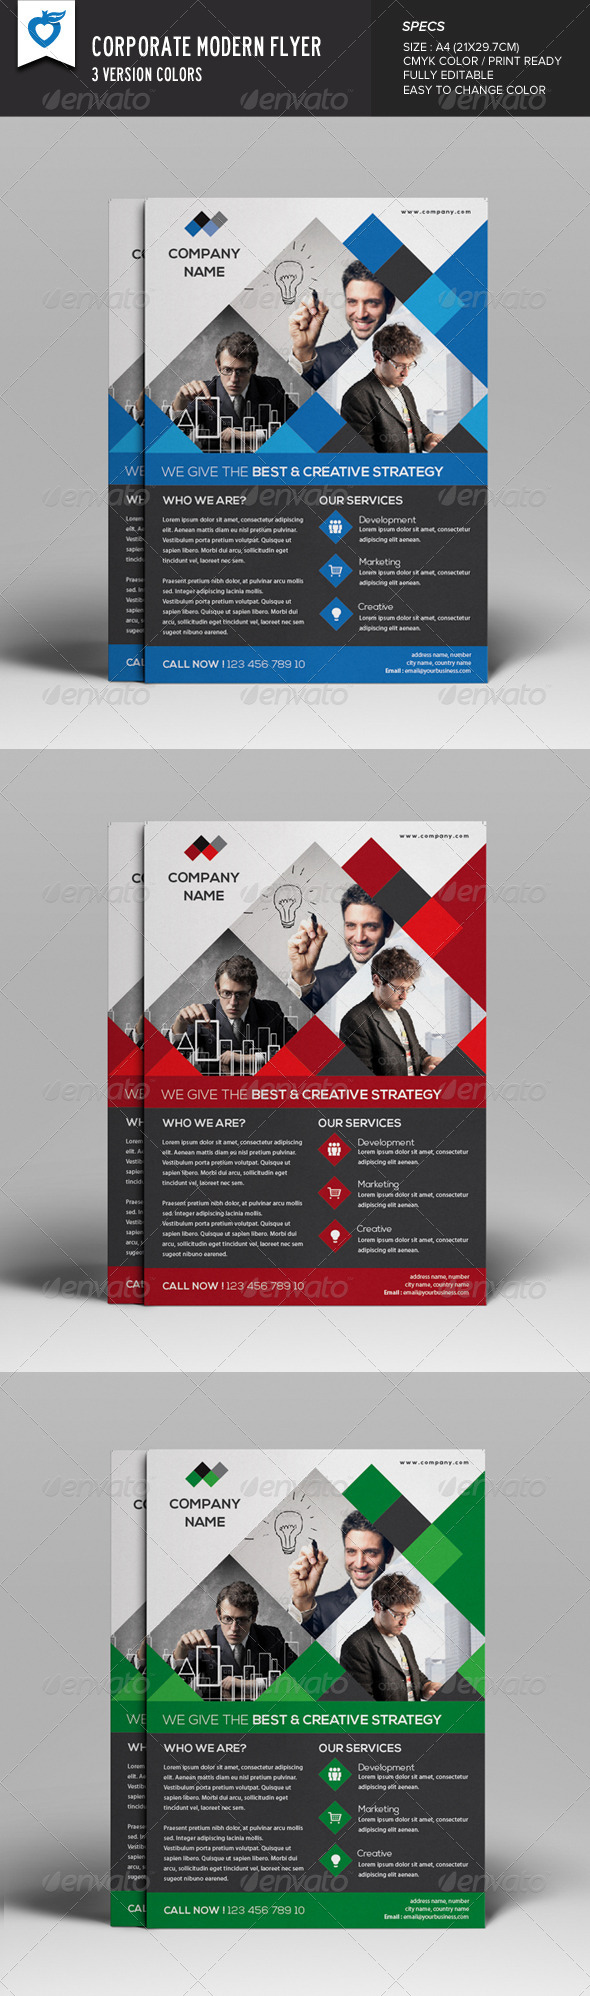 GraphicRiver Corporate Modern Flyer 8204405